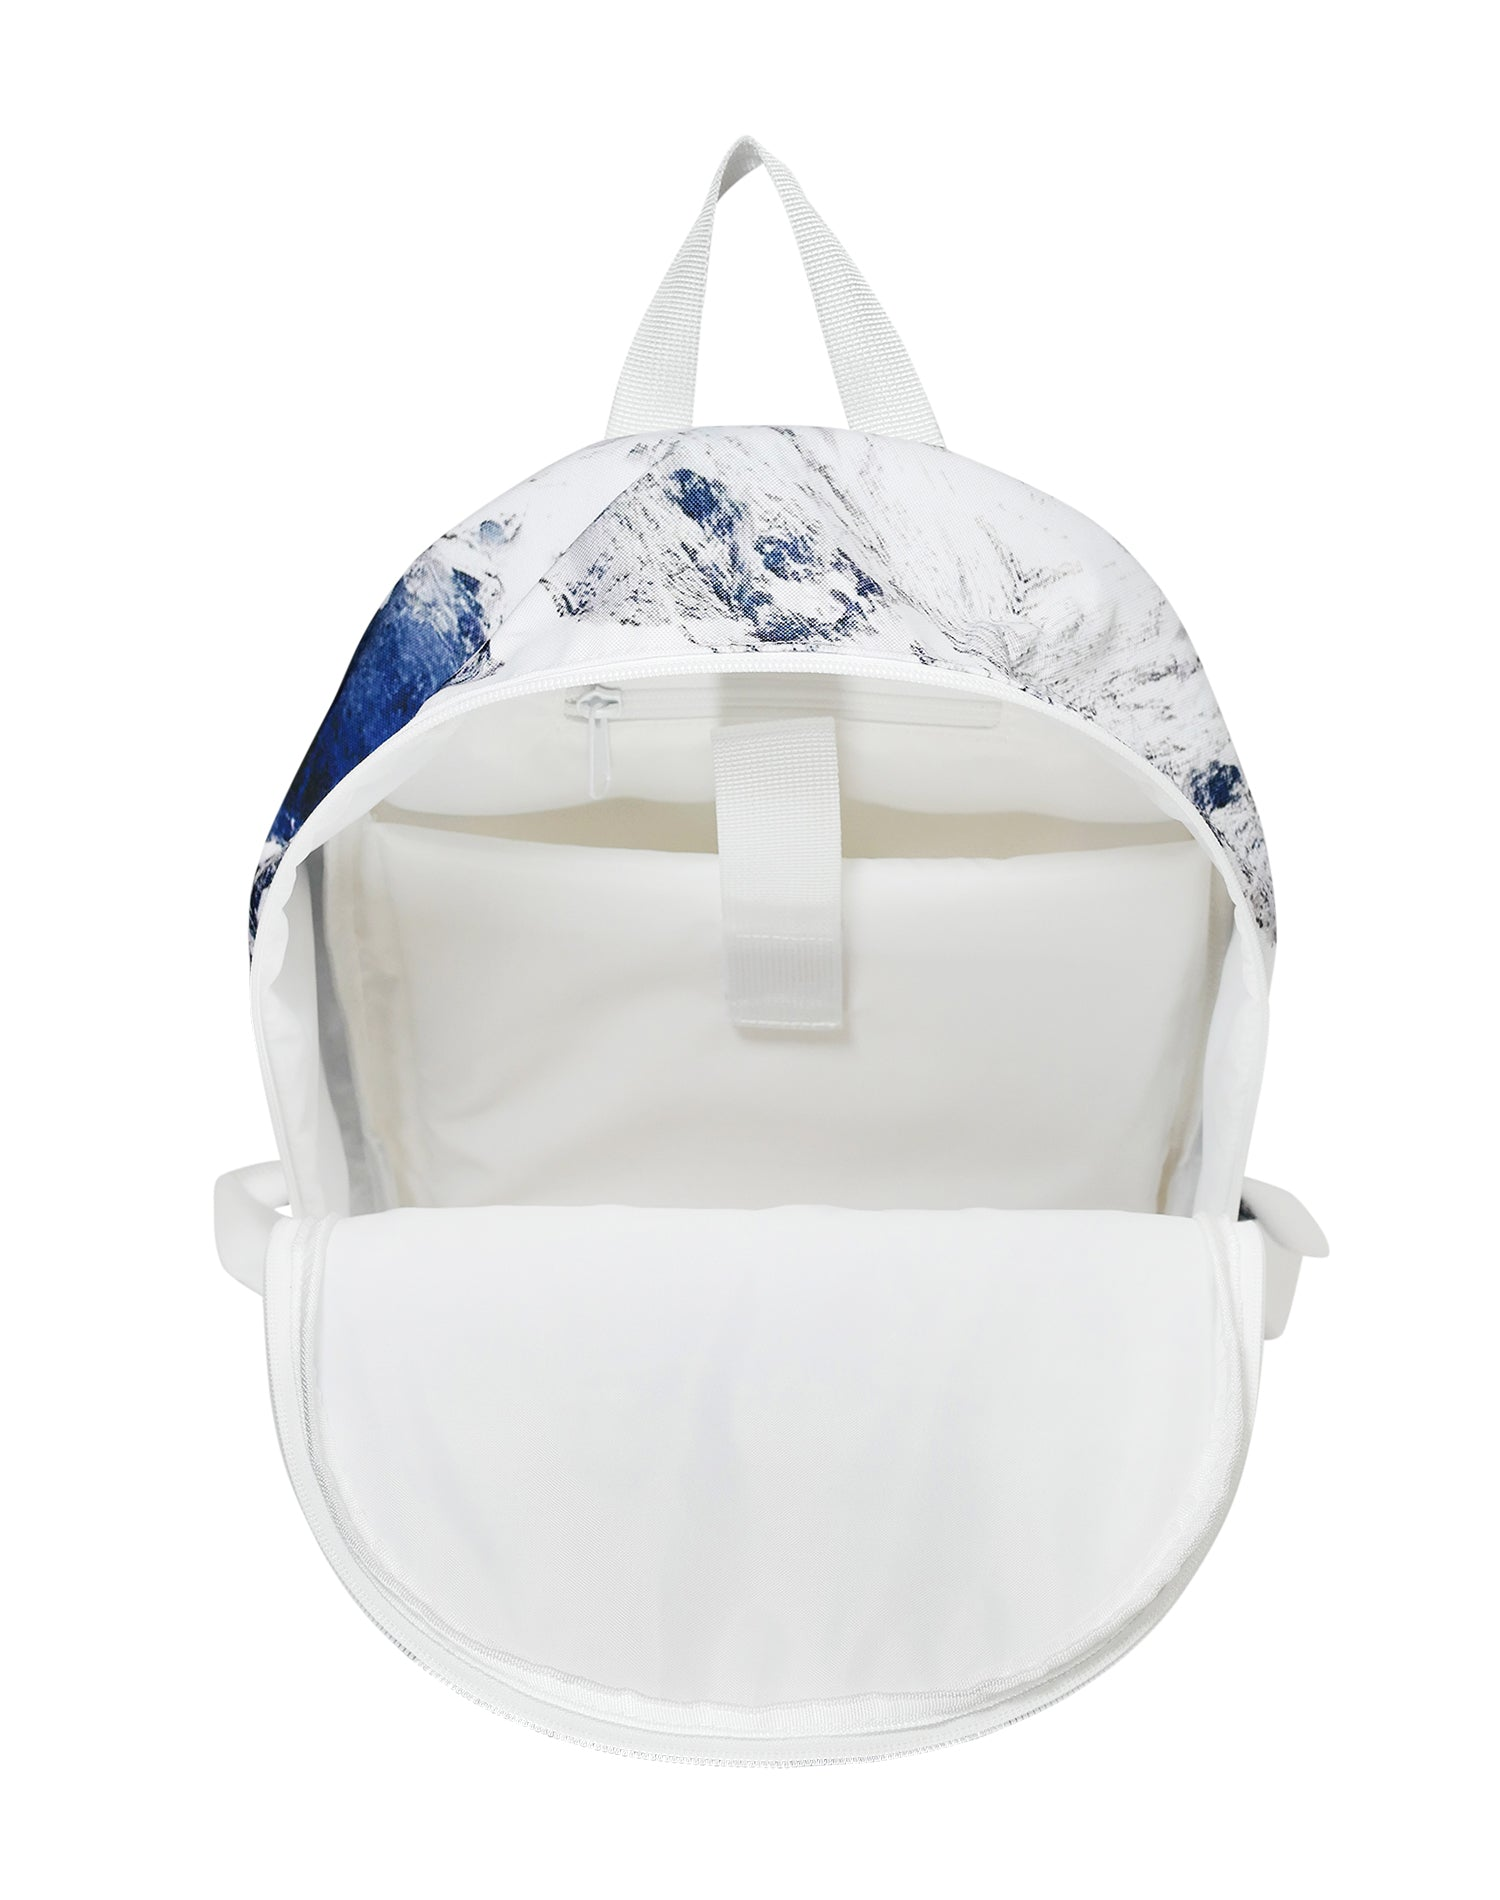 Glacial Rock Cotton Canvas Backpack.冰川岩棉帆布背囊